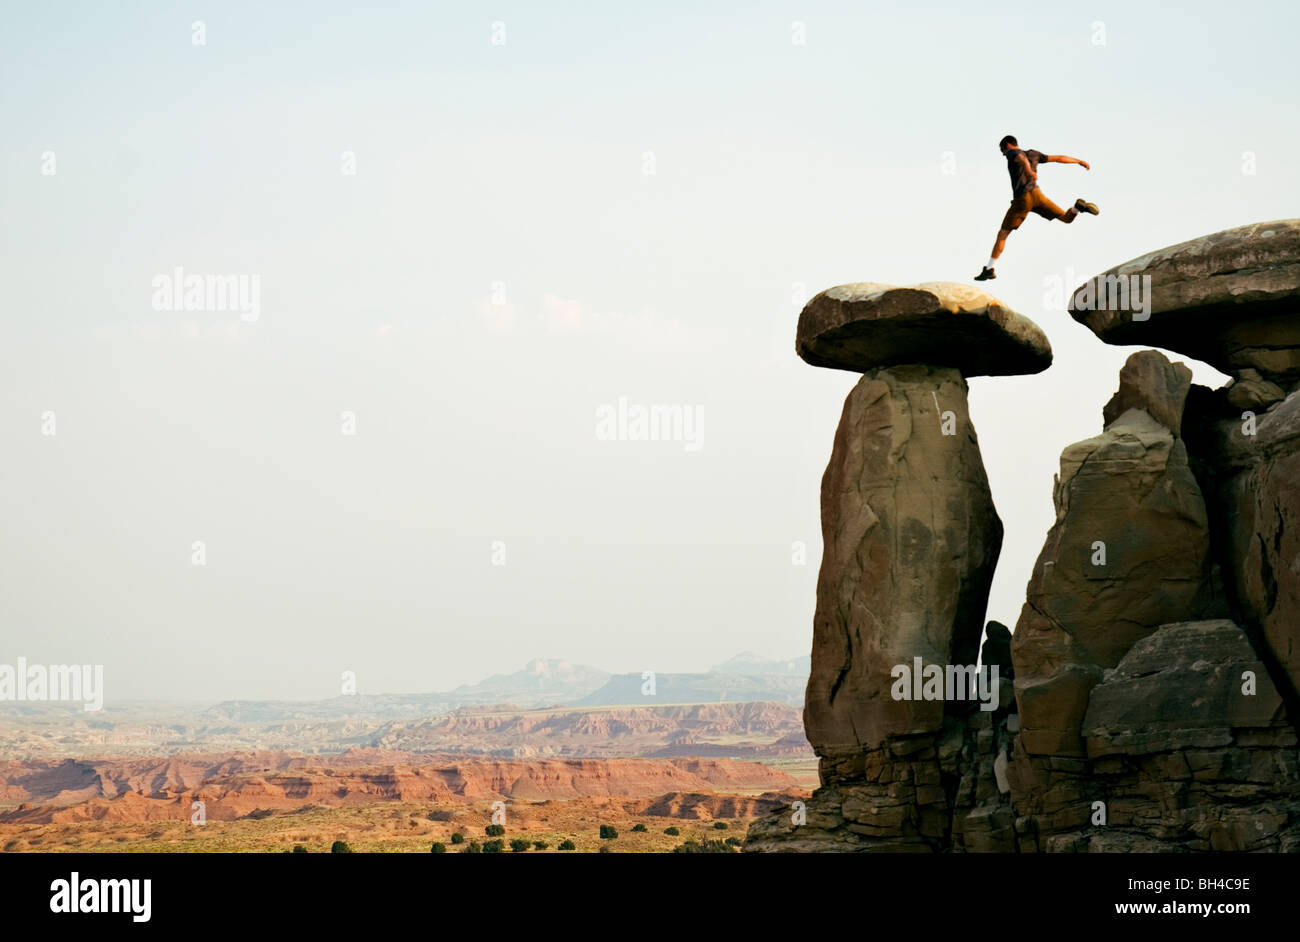 A young man jumps across a set of rocks in Moab, Utah. - Stock Image